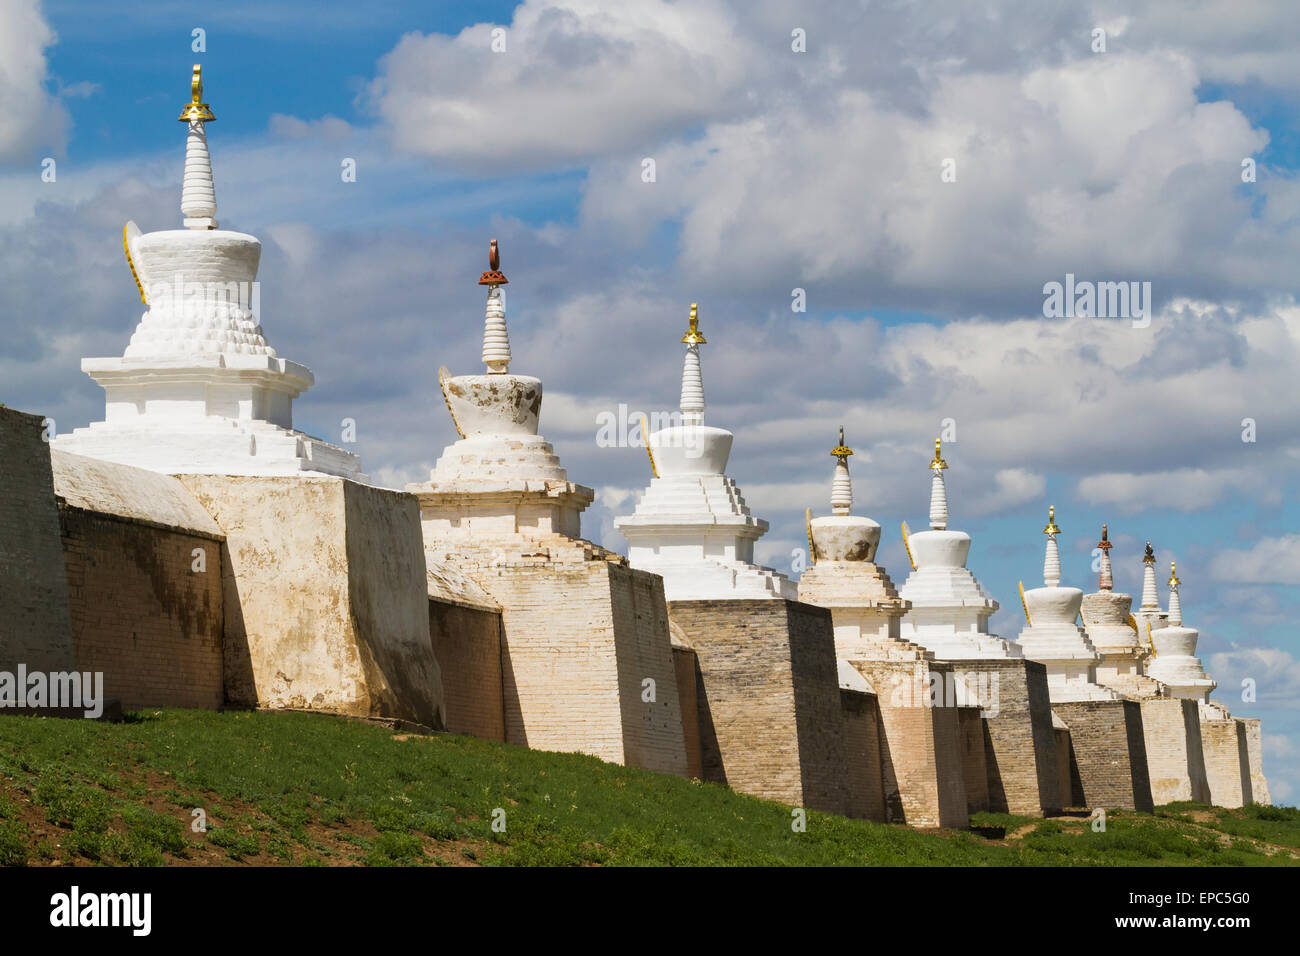 Image result for karakorum stupas